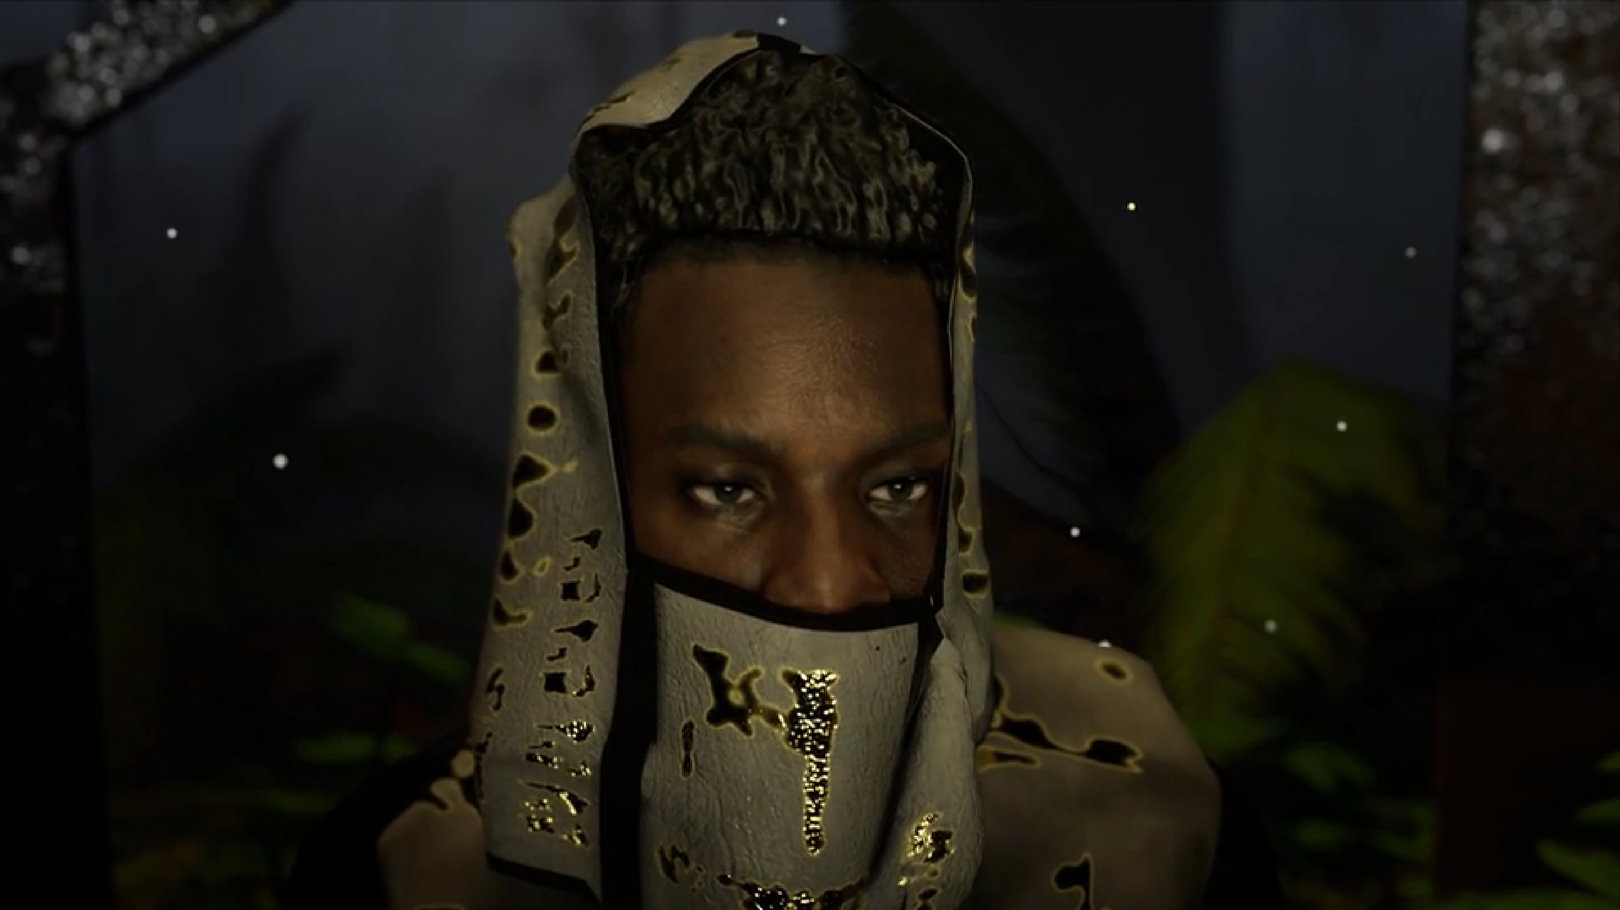 Gaika 3D scanned by Form Capture for artist Rick Farin. 3D scanning for Virtual Reality. 3 of 3.